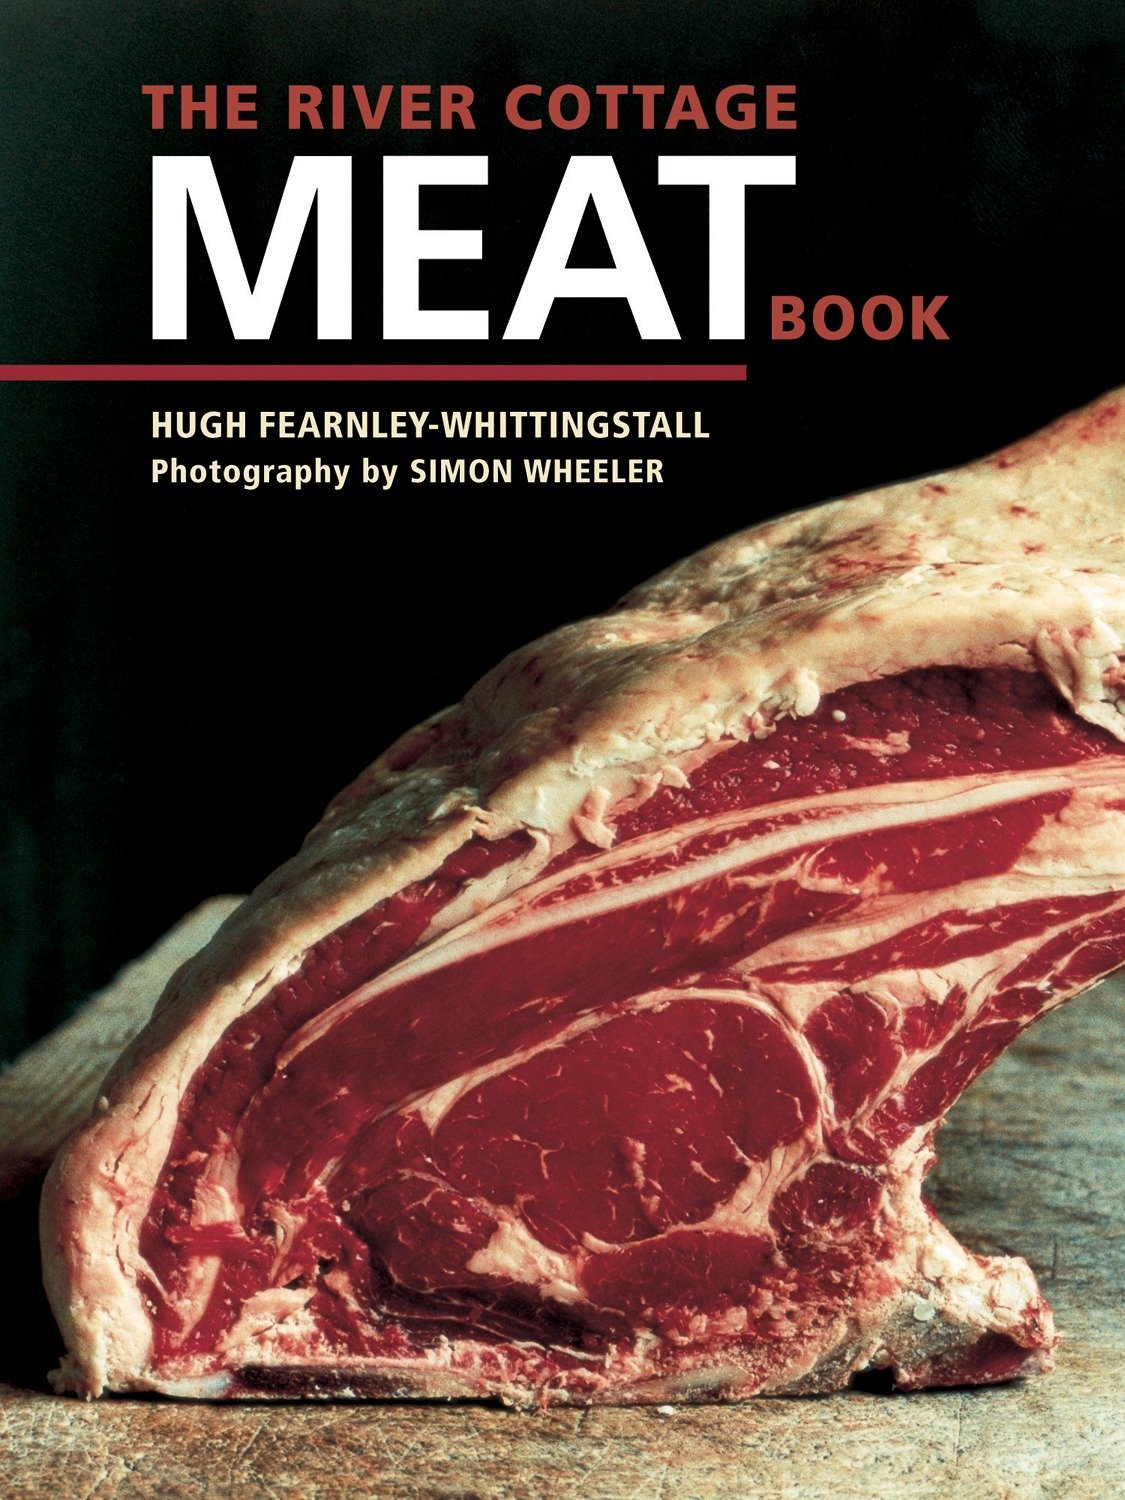 The River Cottage Meat Book by Ten Speed Press